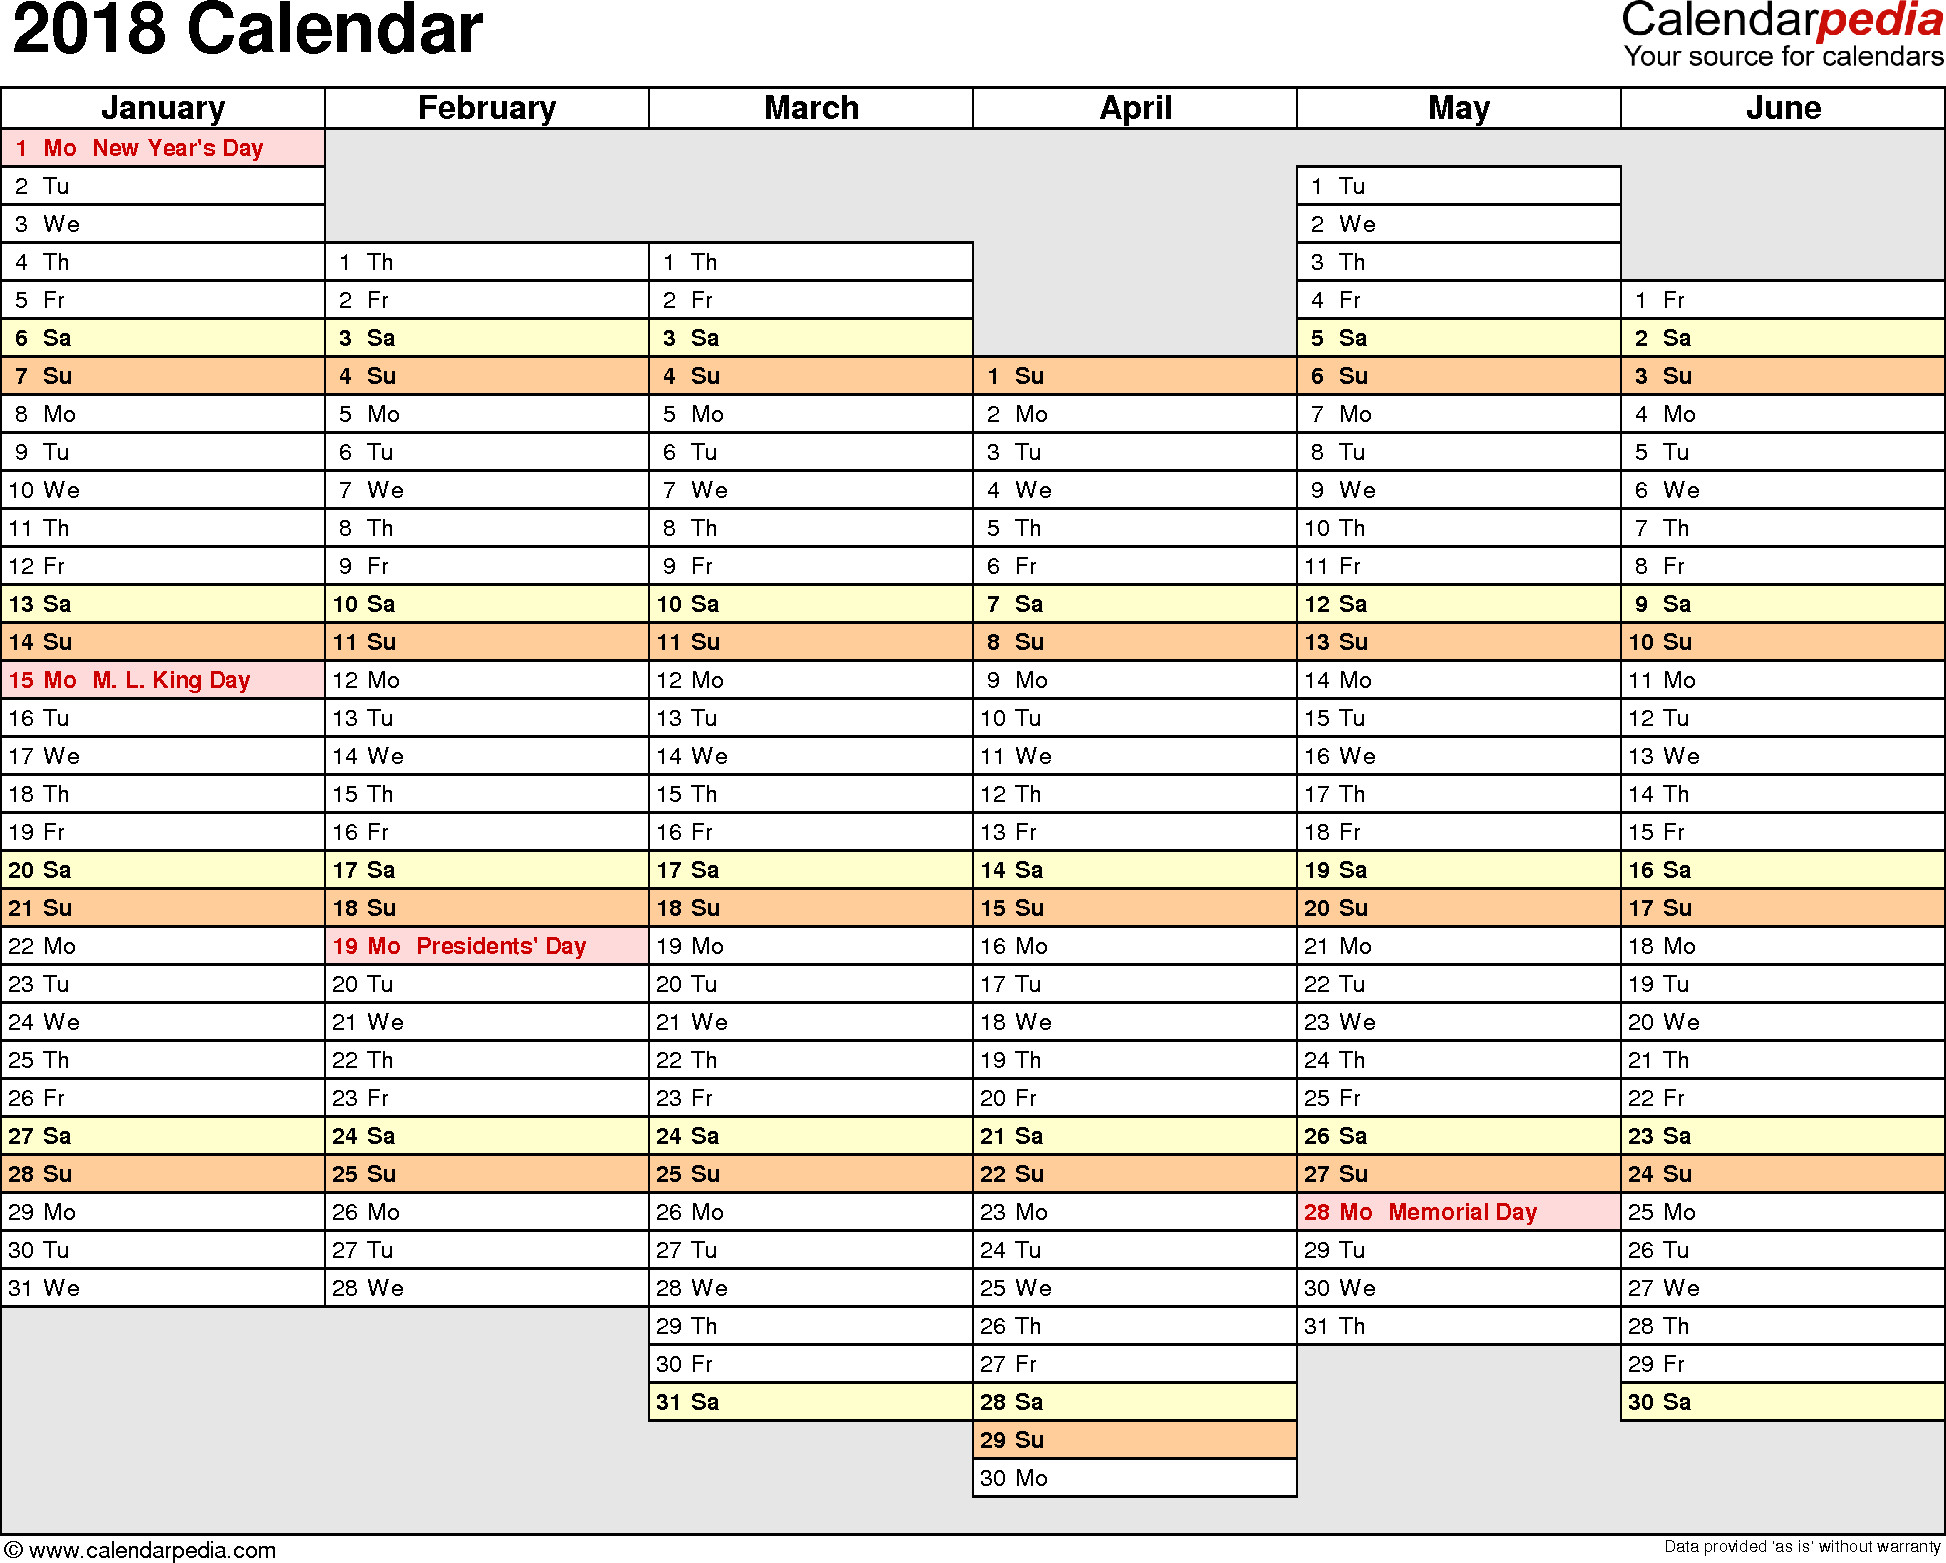 Downloadable Spreadsheets and 2018 Calendar 17 Free Printable Excel Templates Xls